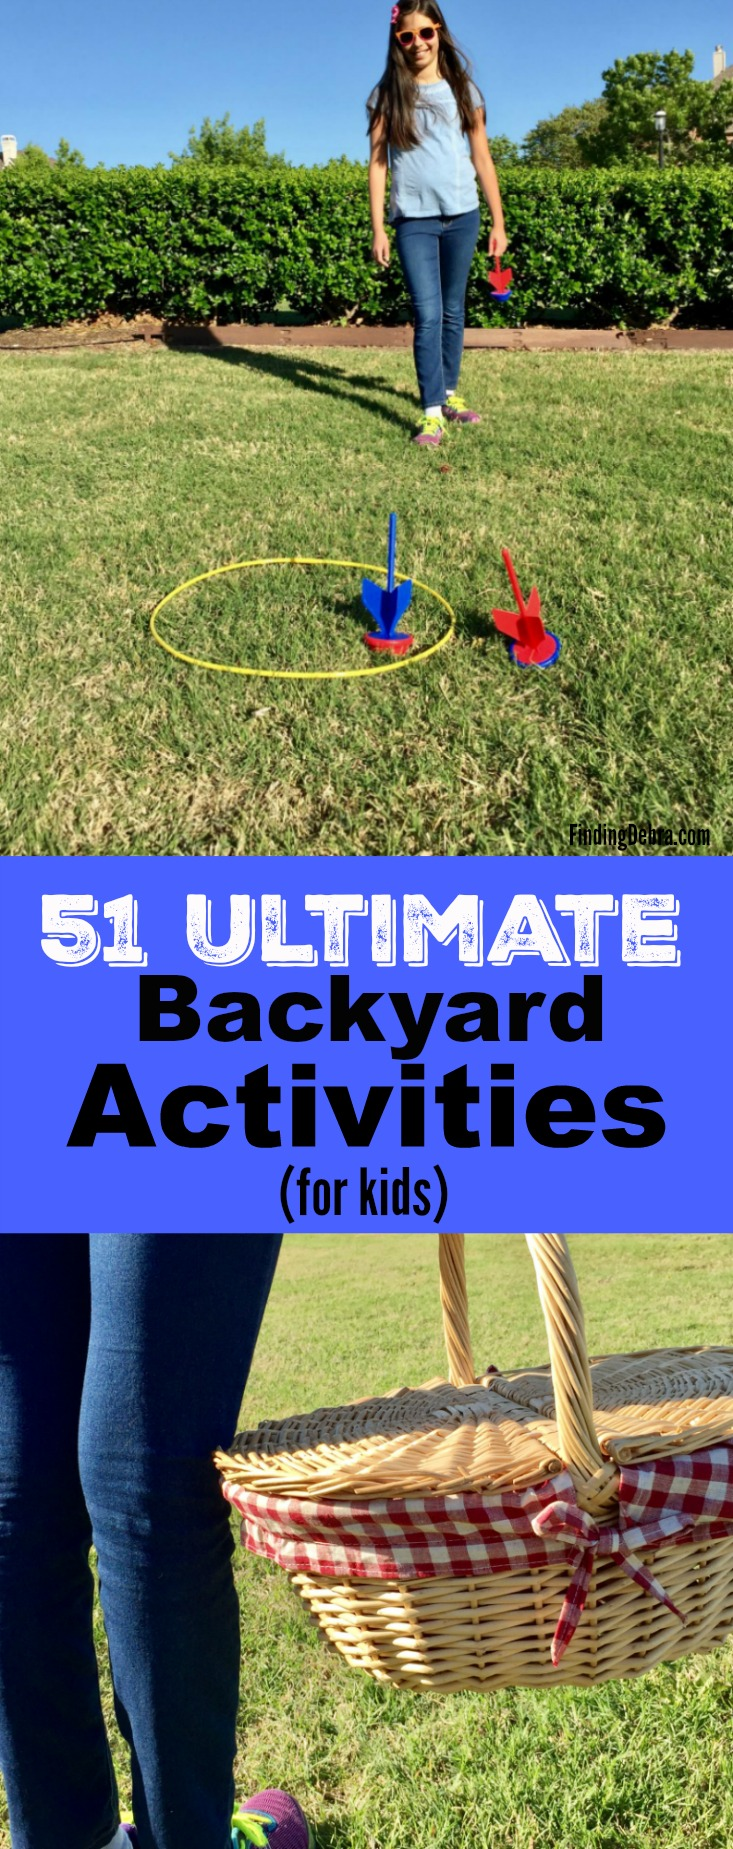 51 Ultimate Backyard Activities for Kids